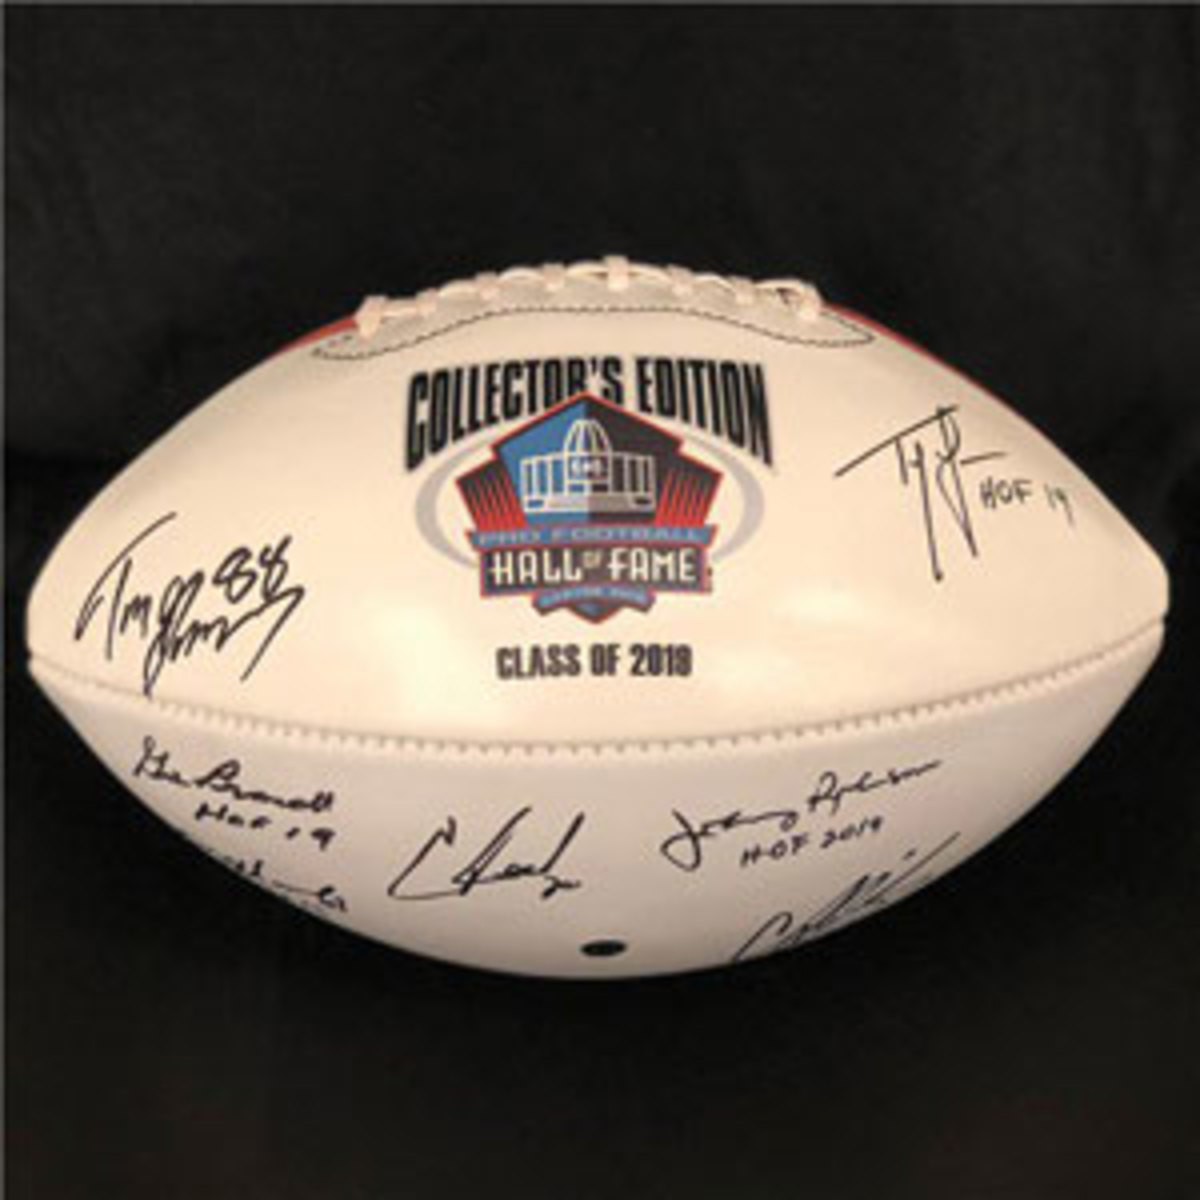 A signed 2019 Hall of Fame football.